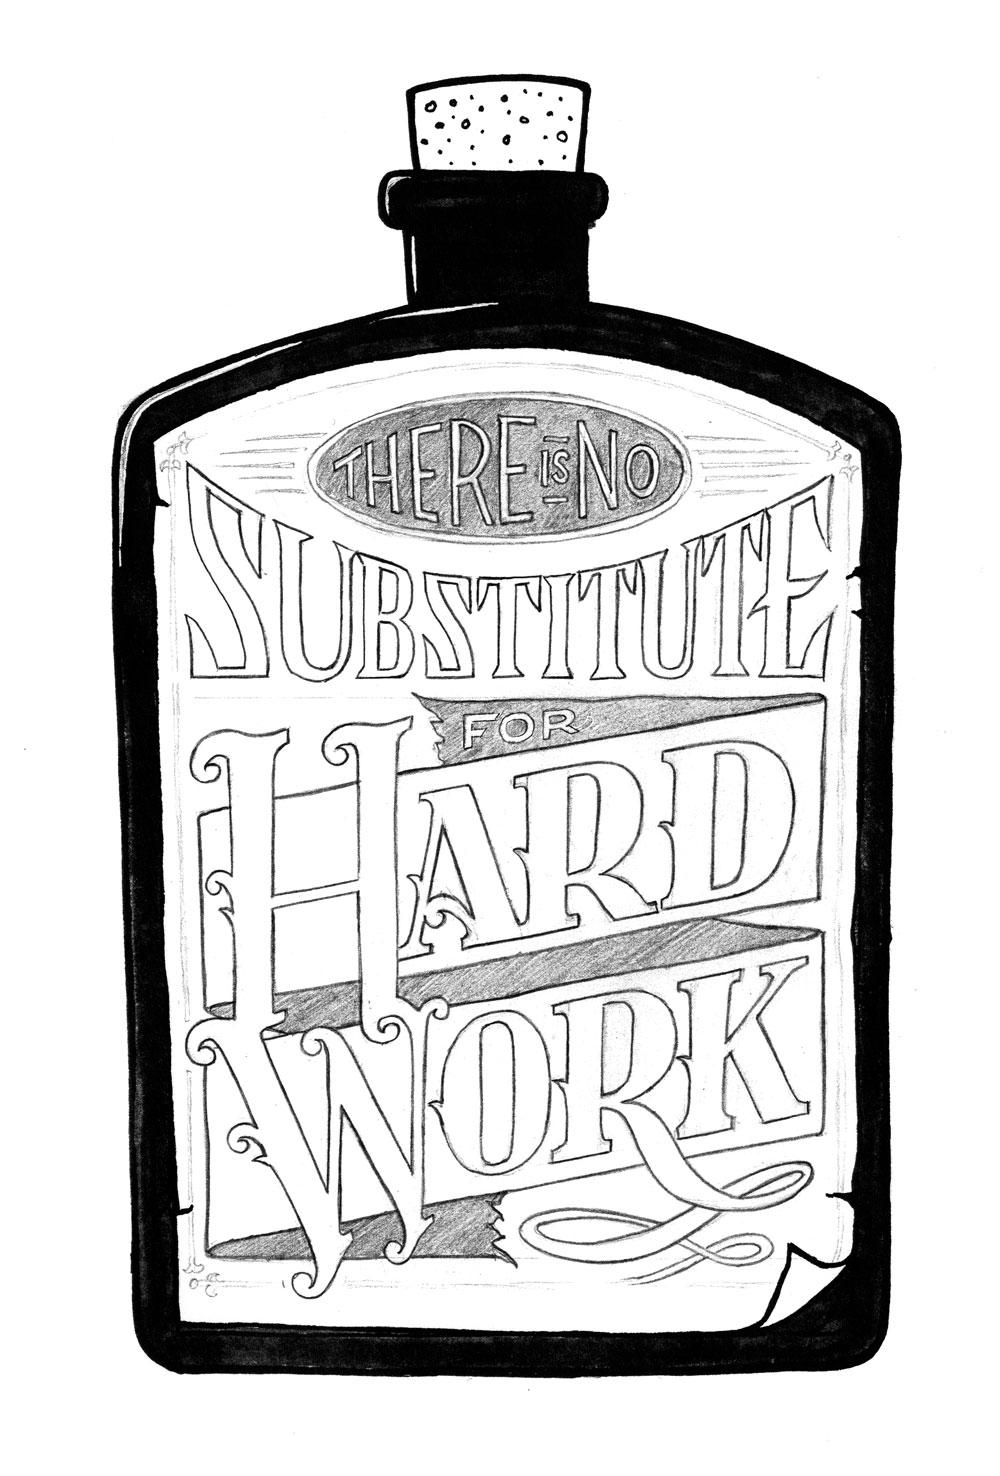 There is No Substitute for Hard Work - image 11 - student project